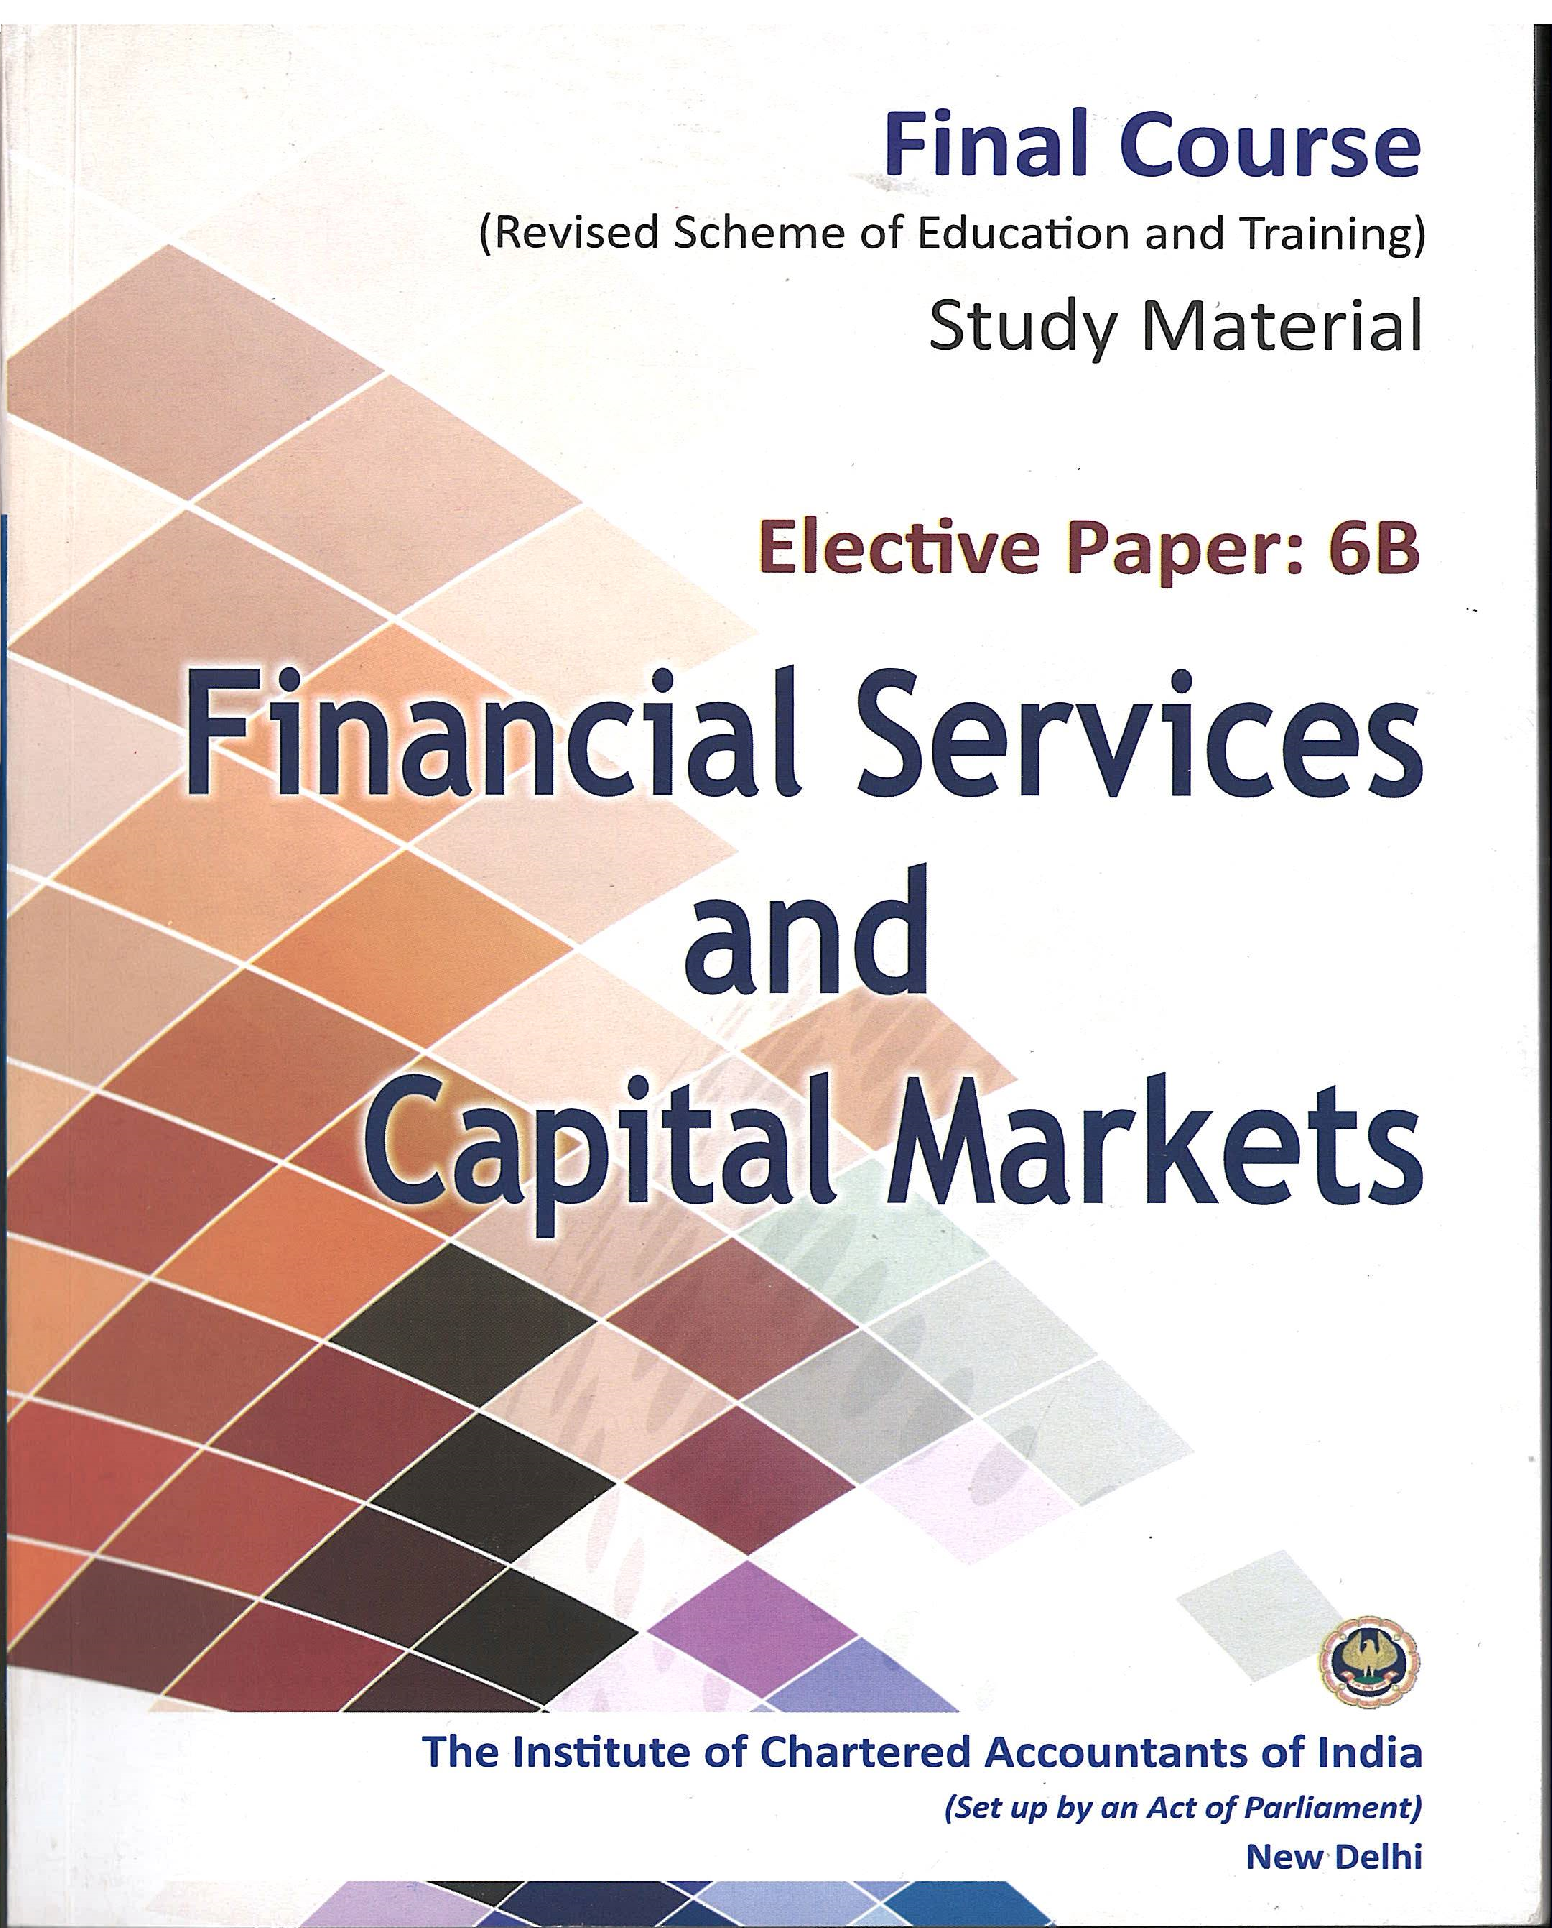 Elective Paper - Financial Services & Capital Markets - (English), August, 2017